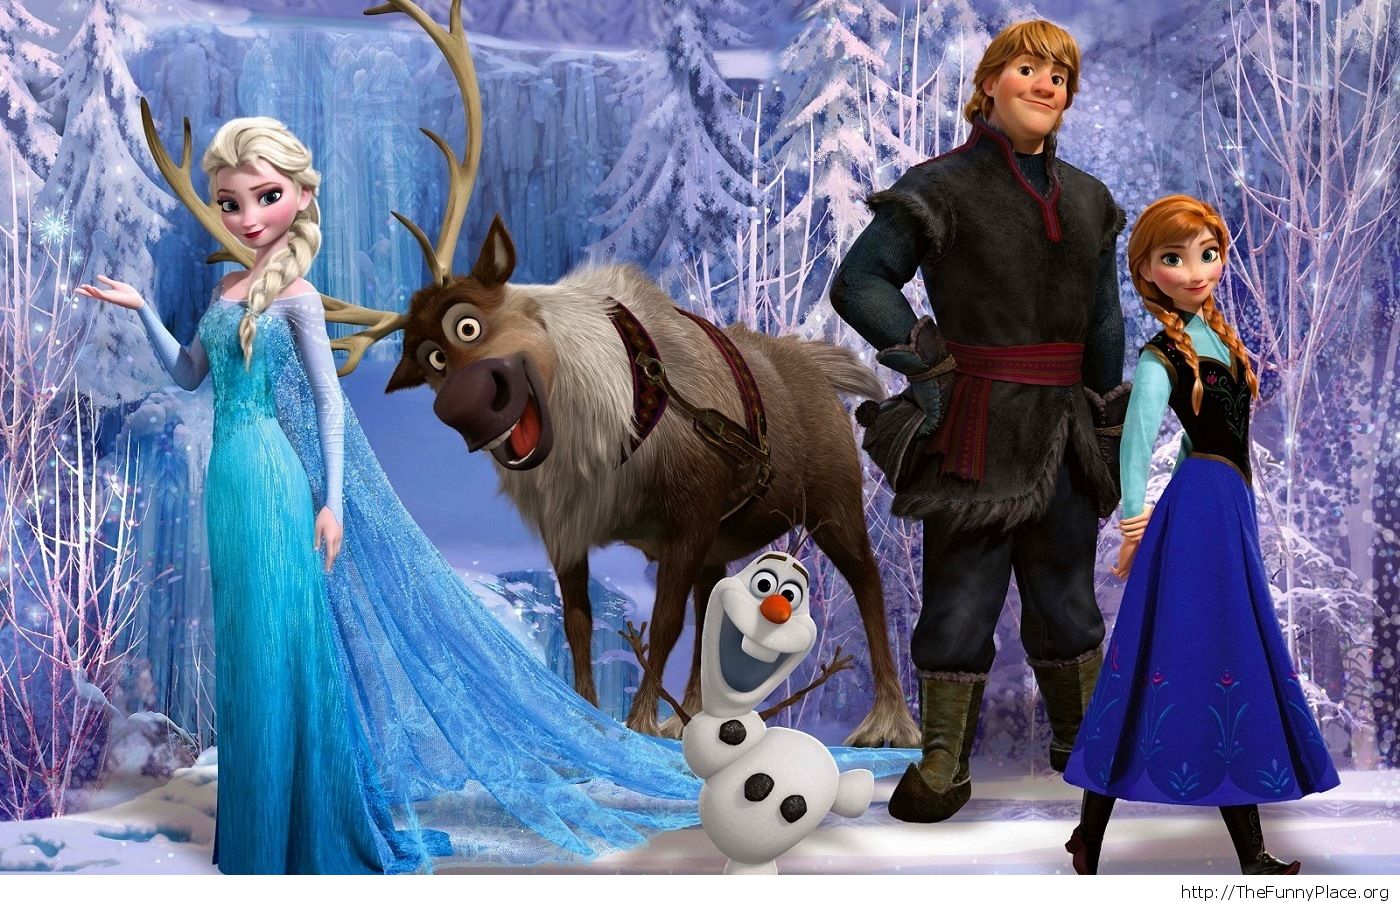 Frozen wallpapers thefunnyplace - Frozen cartoon wallpaper ...